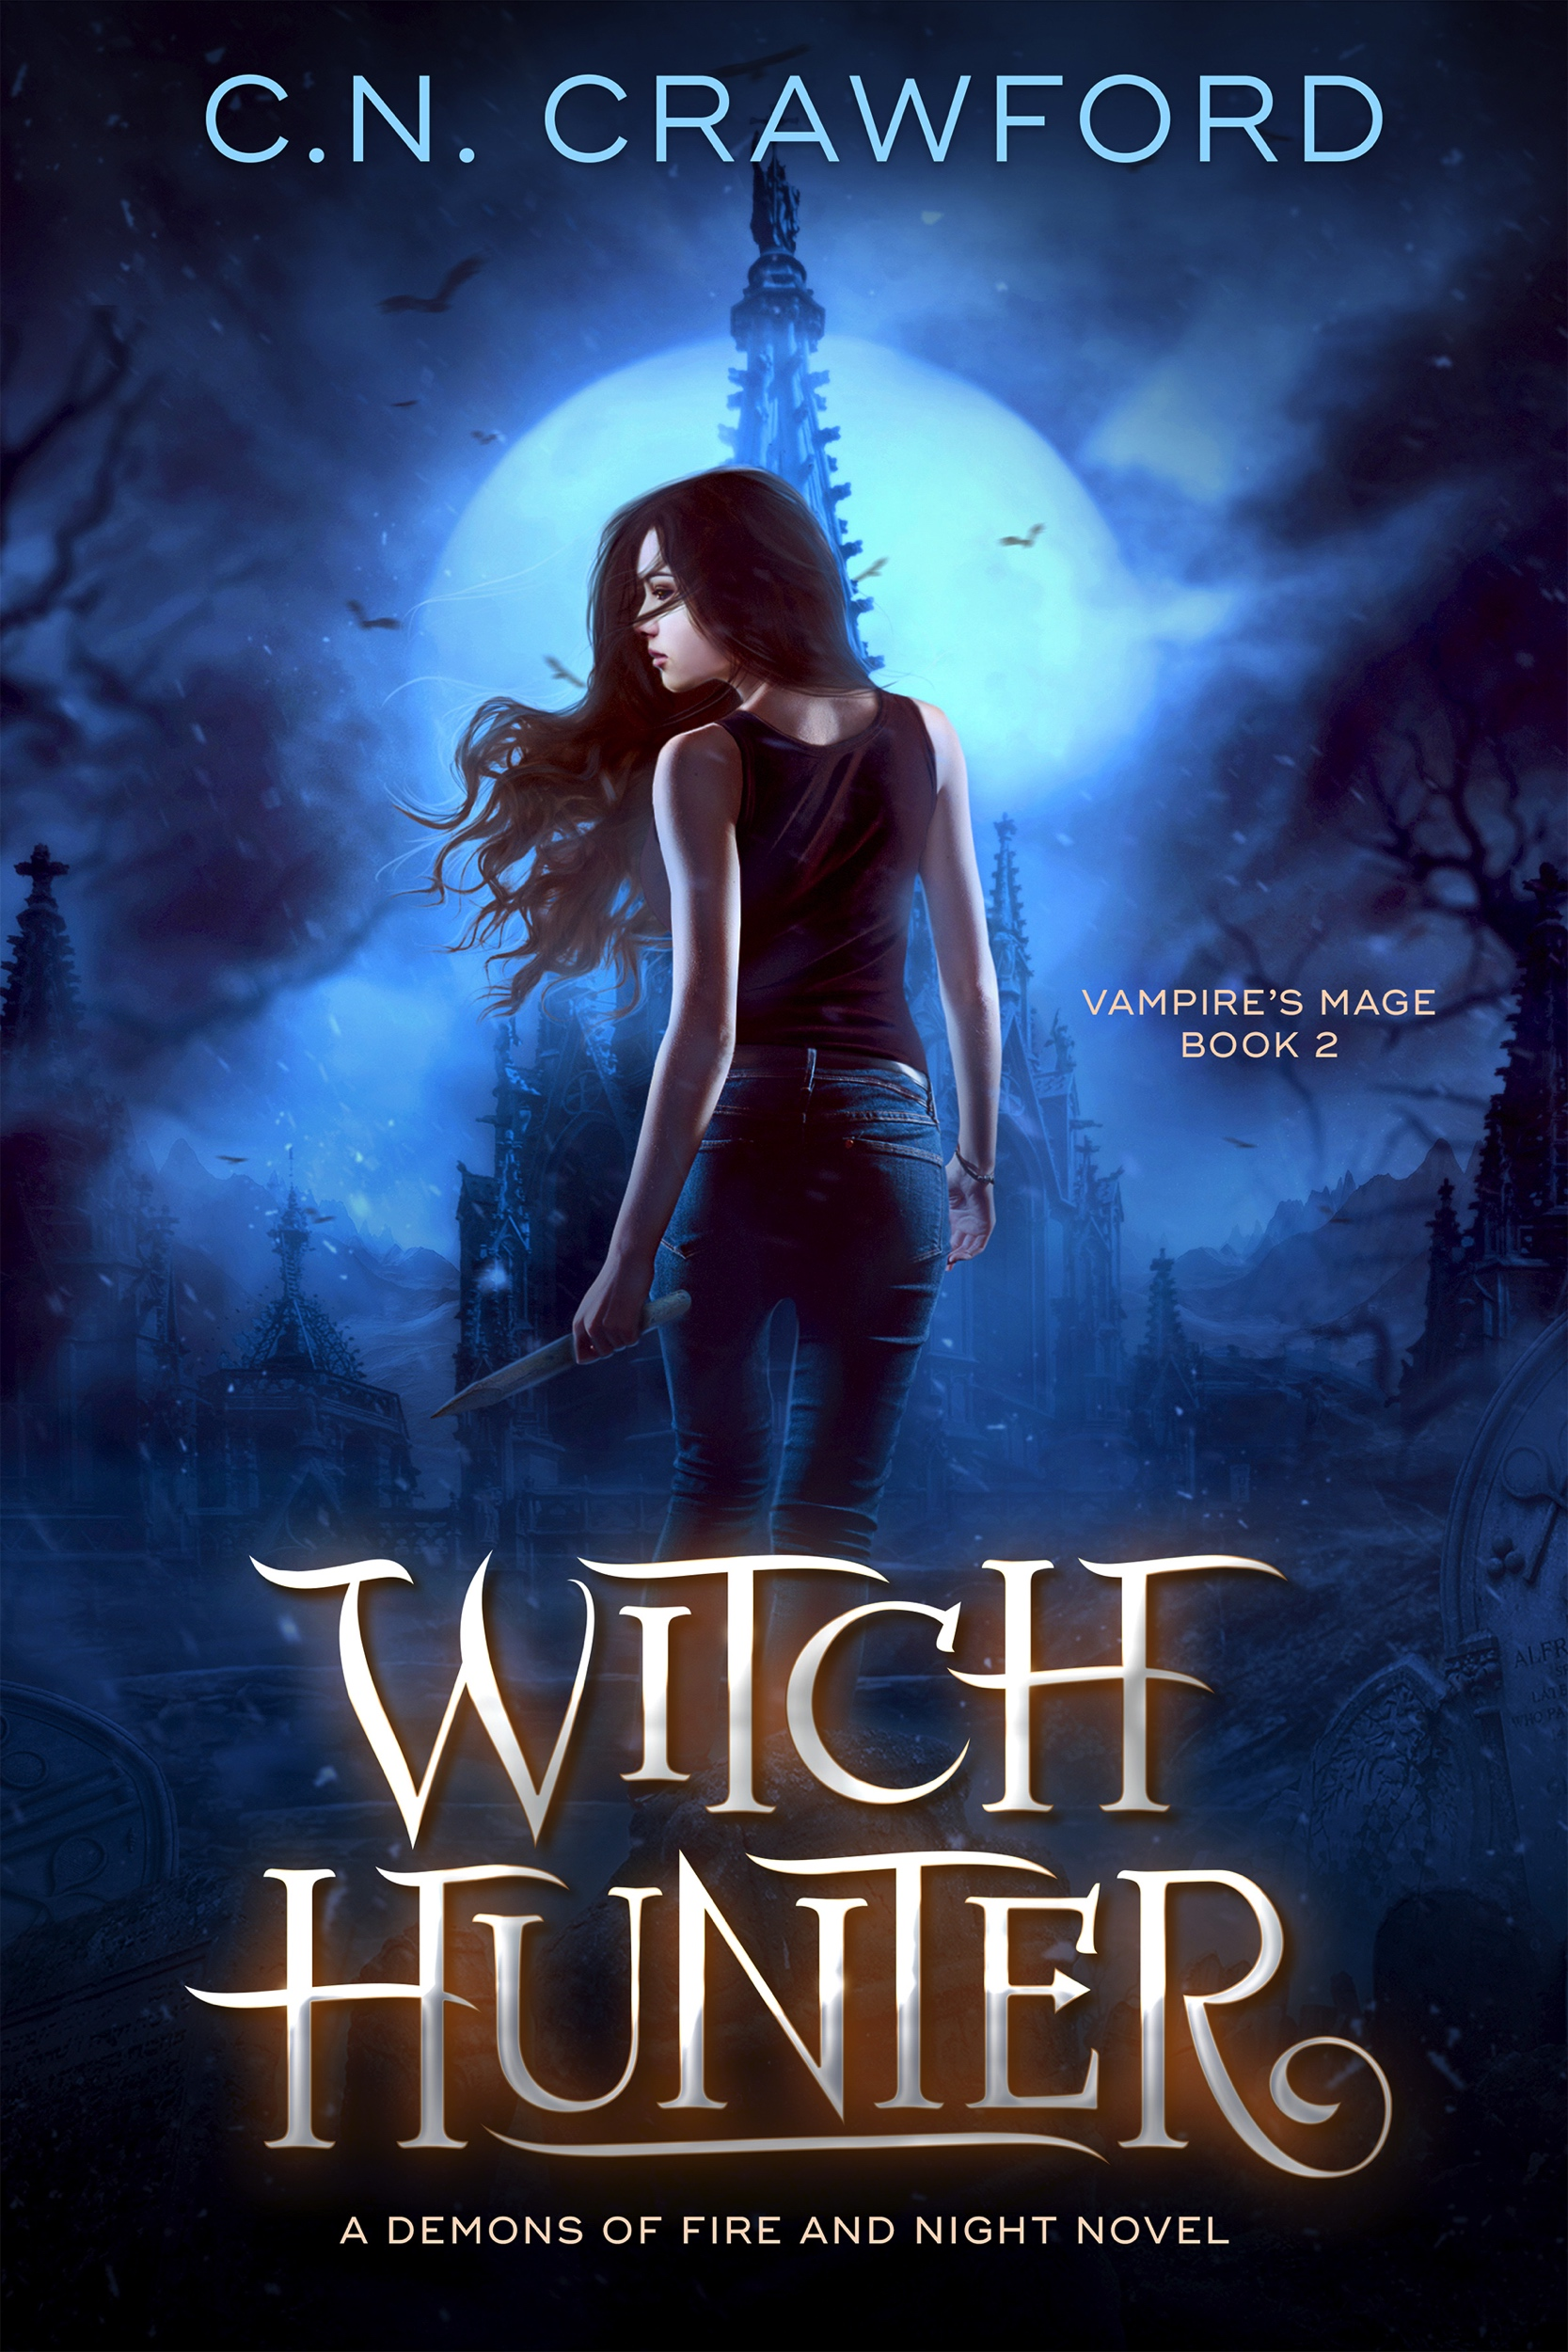 Book 2: Witch Hunter